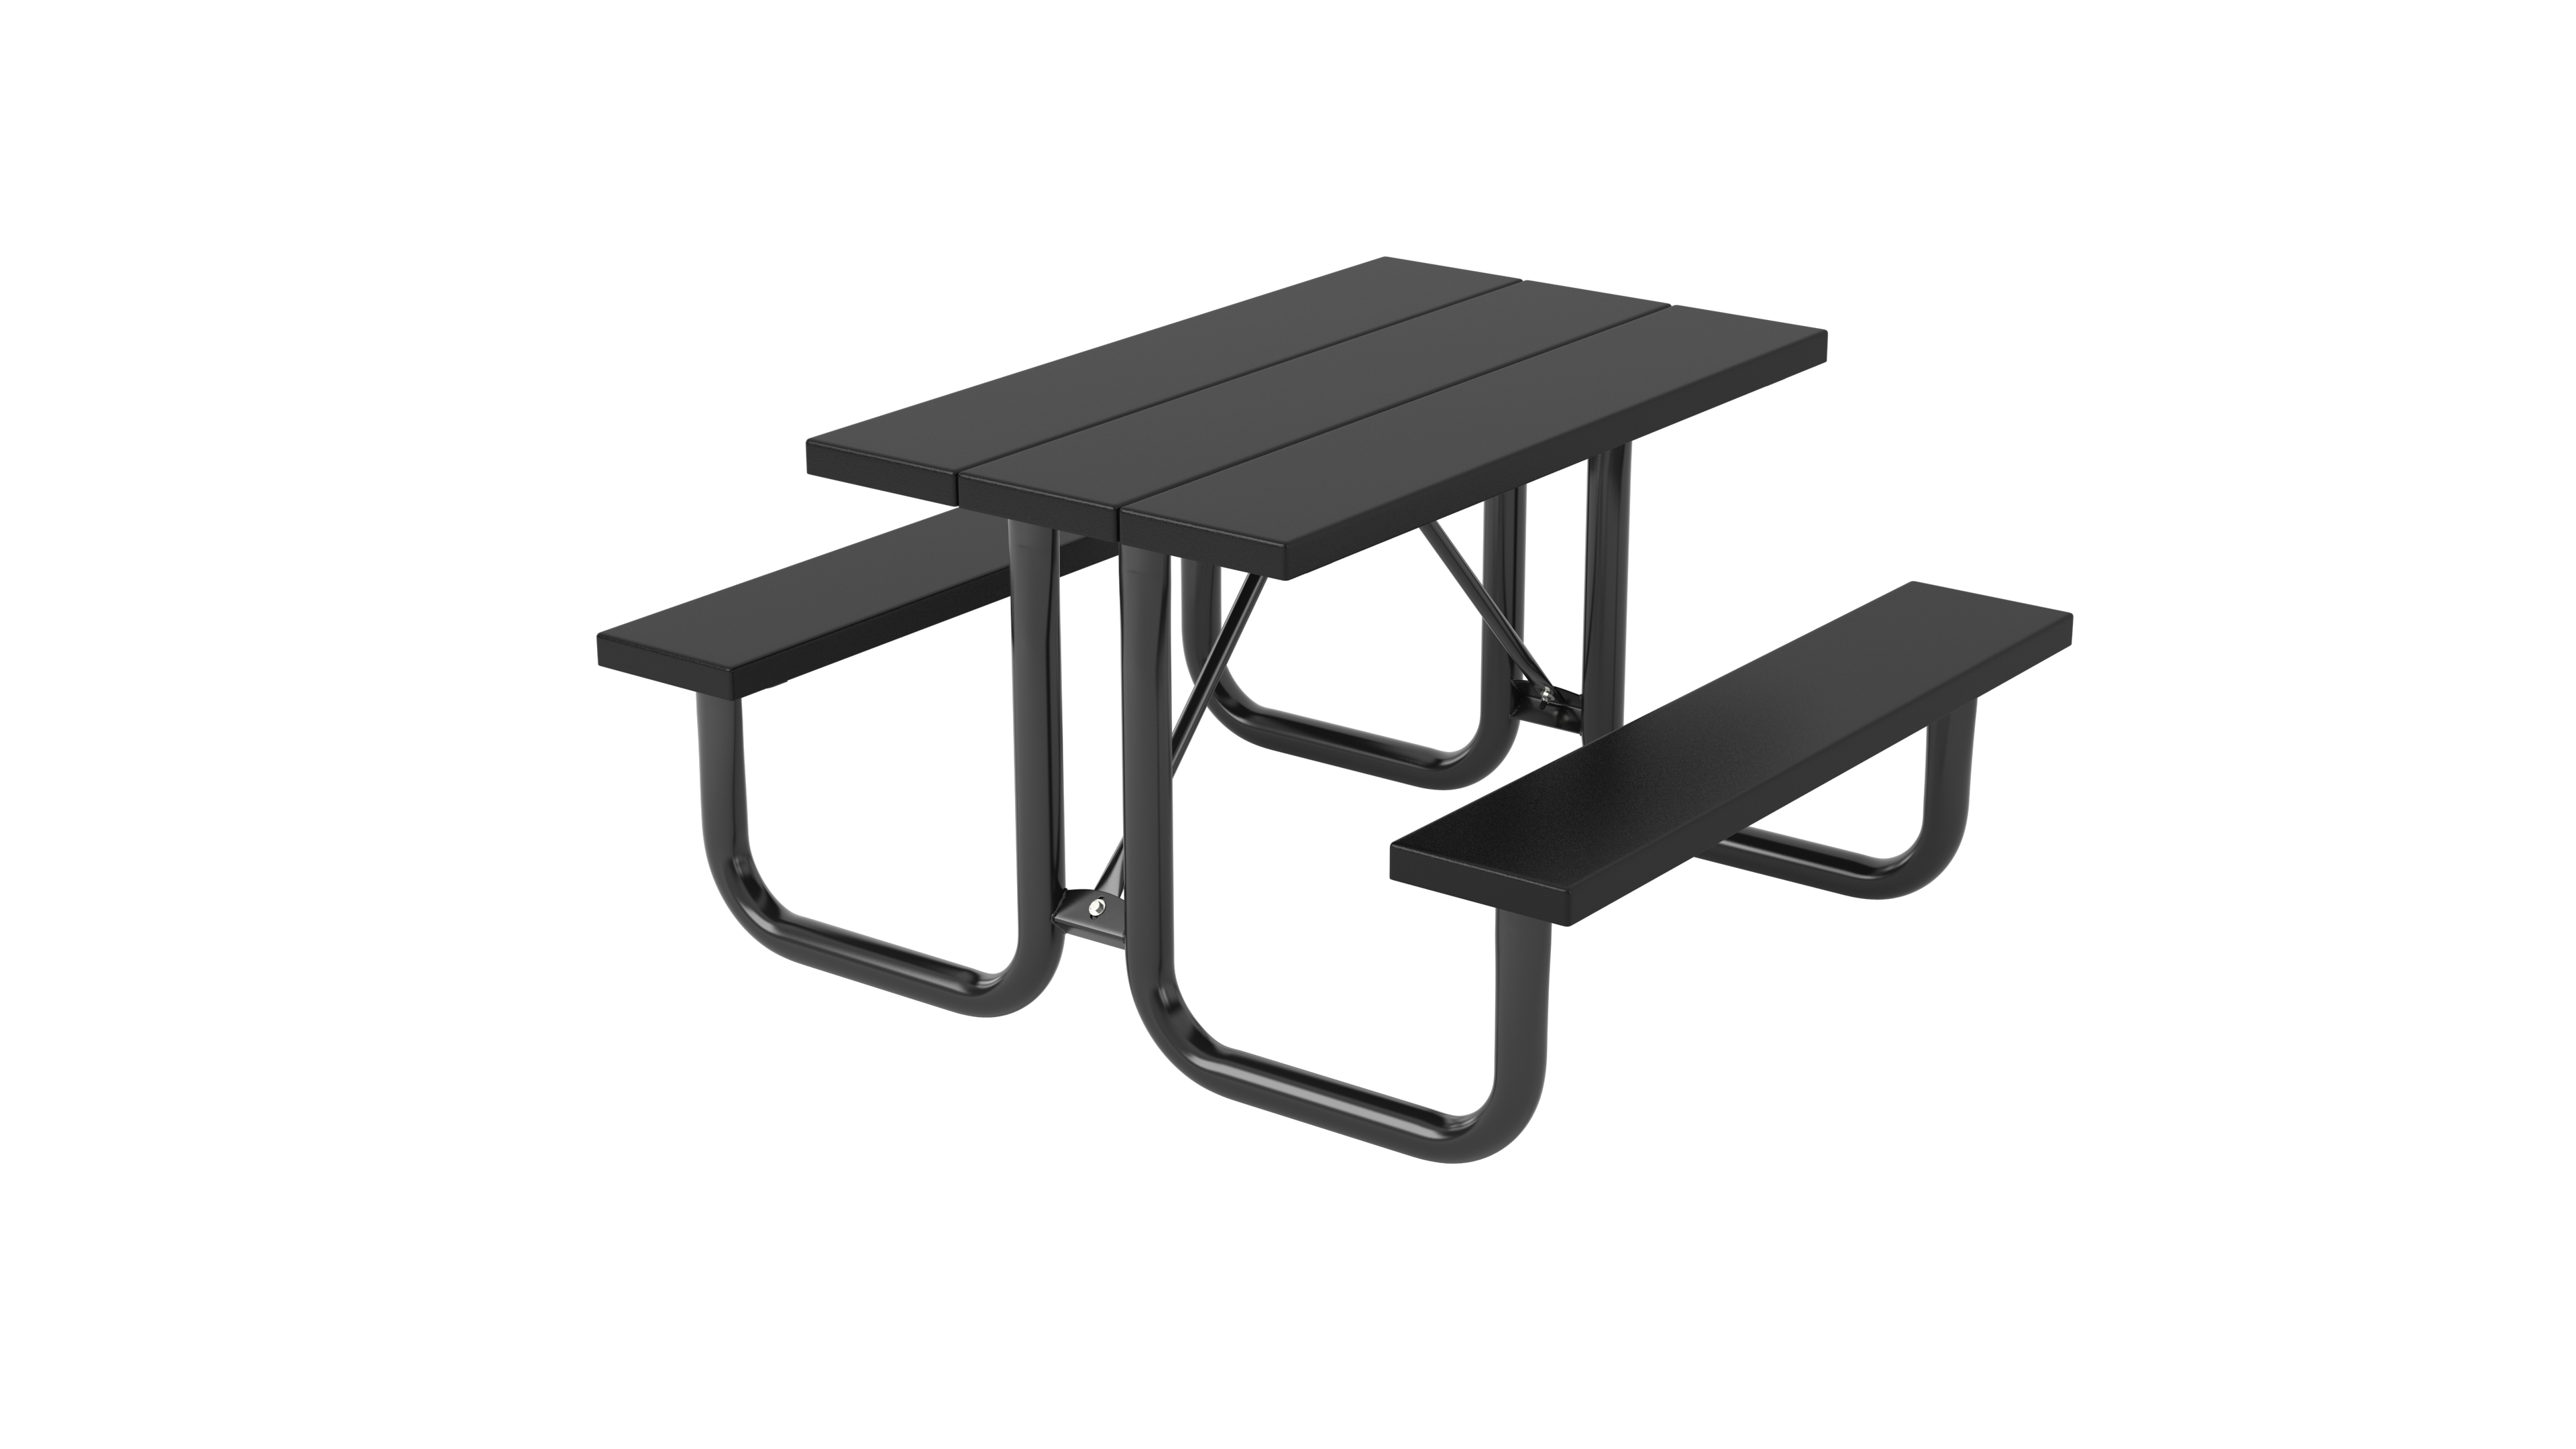 white bench u. Families clipart picnic table